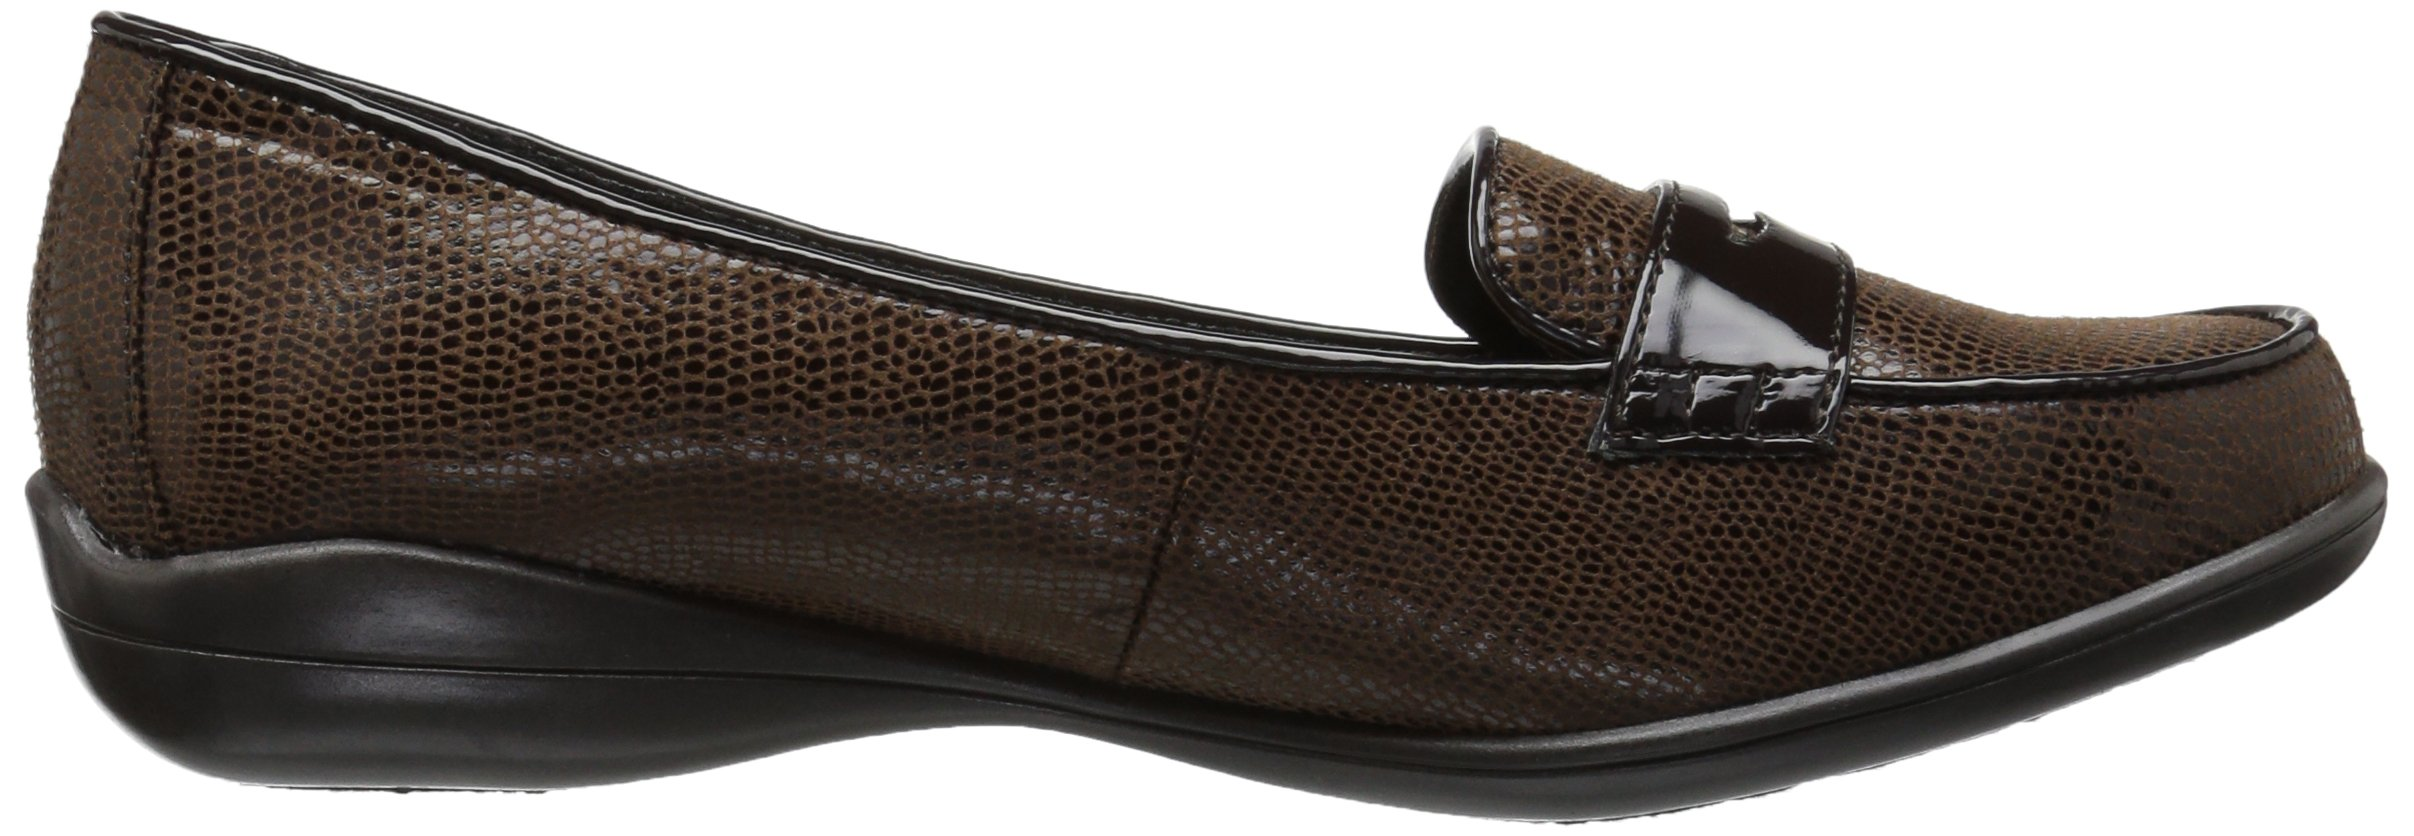 Soft Style by Hush Puppies Women's Daly Penny Loafer, Dark Brown Lizard/Patent, 8.5 W US by Soft Style (Image #7)